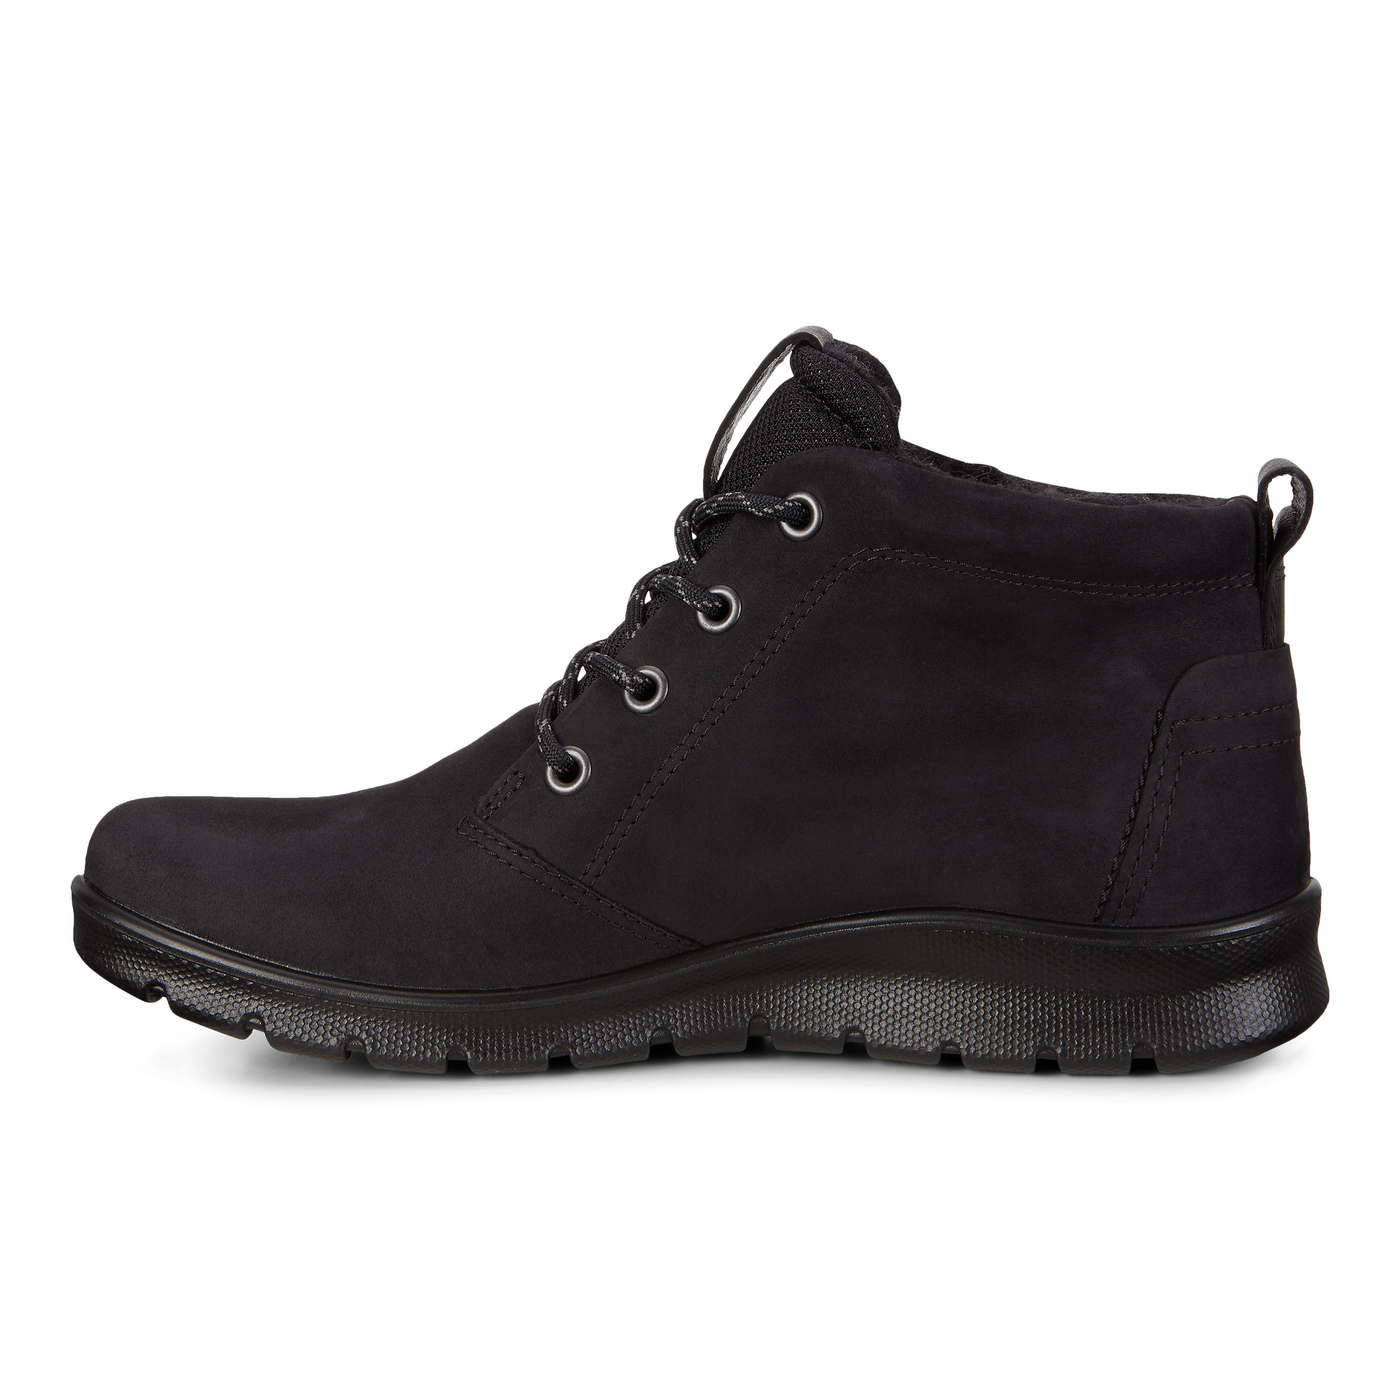 ECCO BABETT BOOT Mid-cut Boot